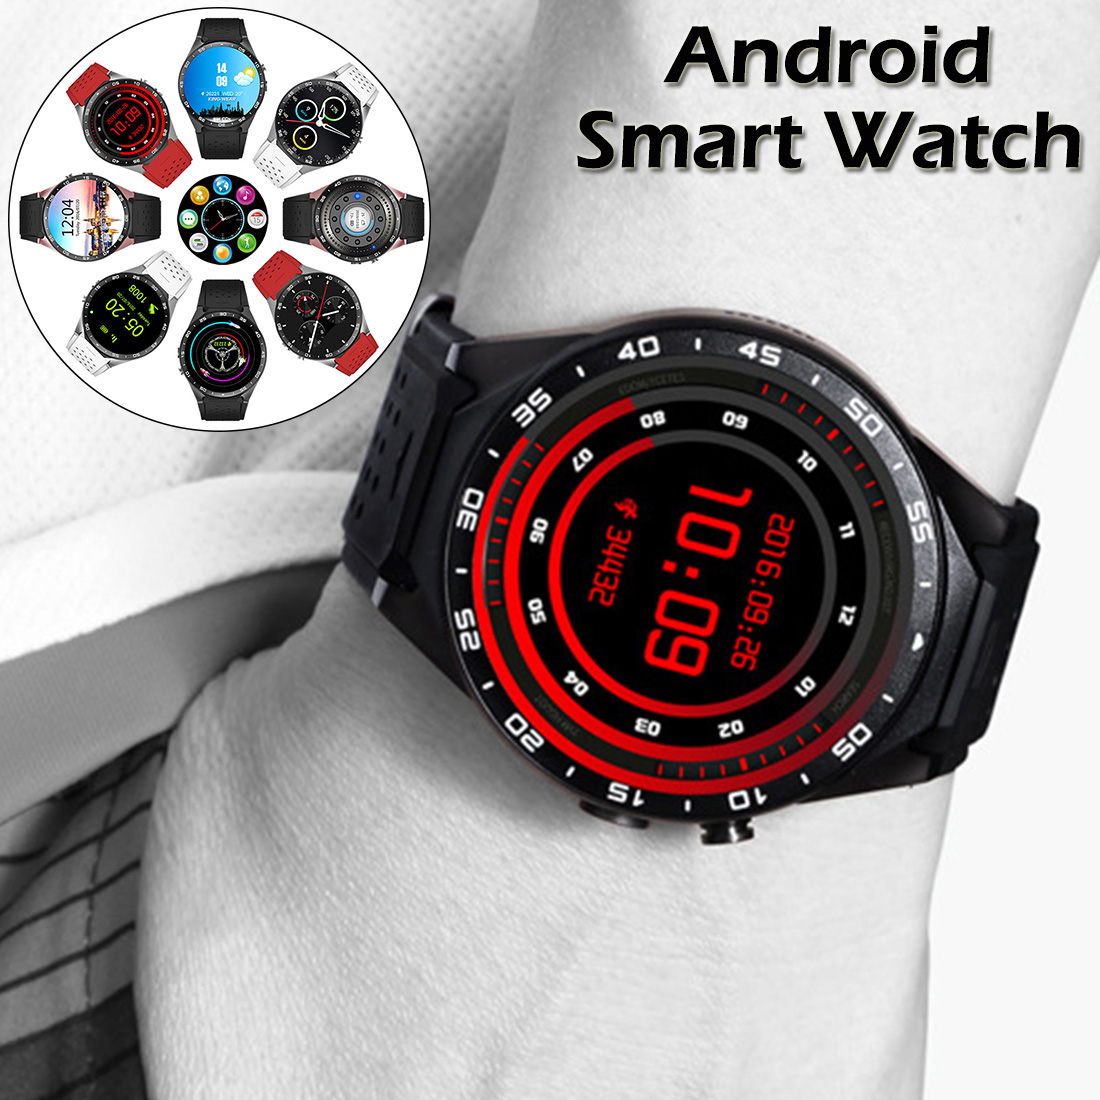 KW88 2MP HD camera 3G Smartwatch BT4.0+WiFi MTK6580 Quad Core 512MB 4GB GPS Pedometer Positioning Smart Watch for Android Phone